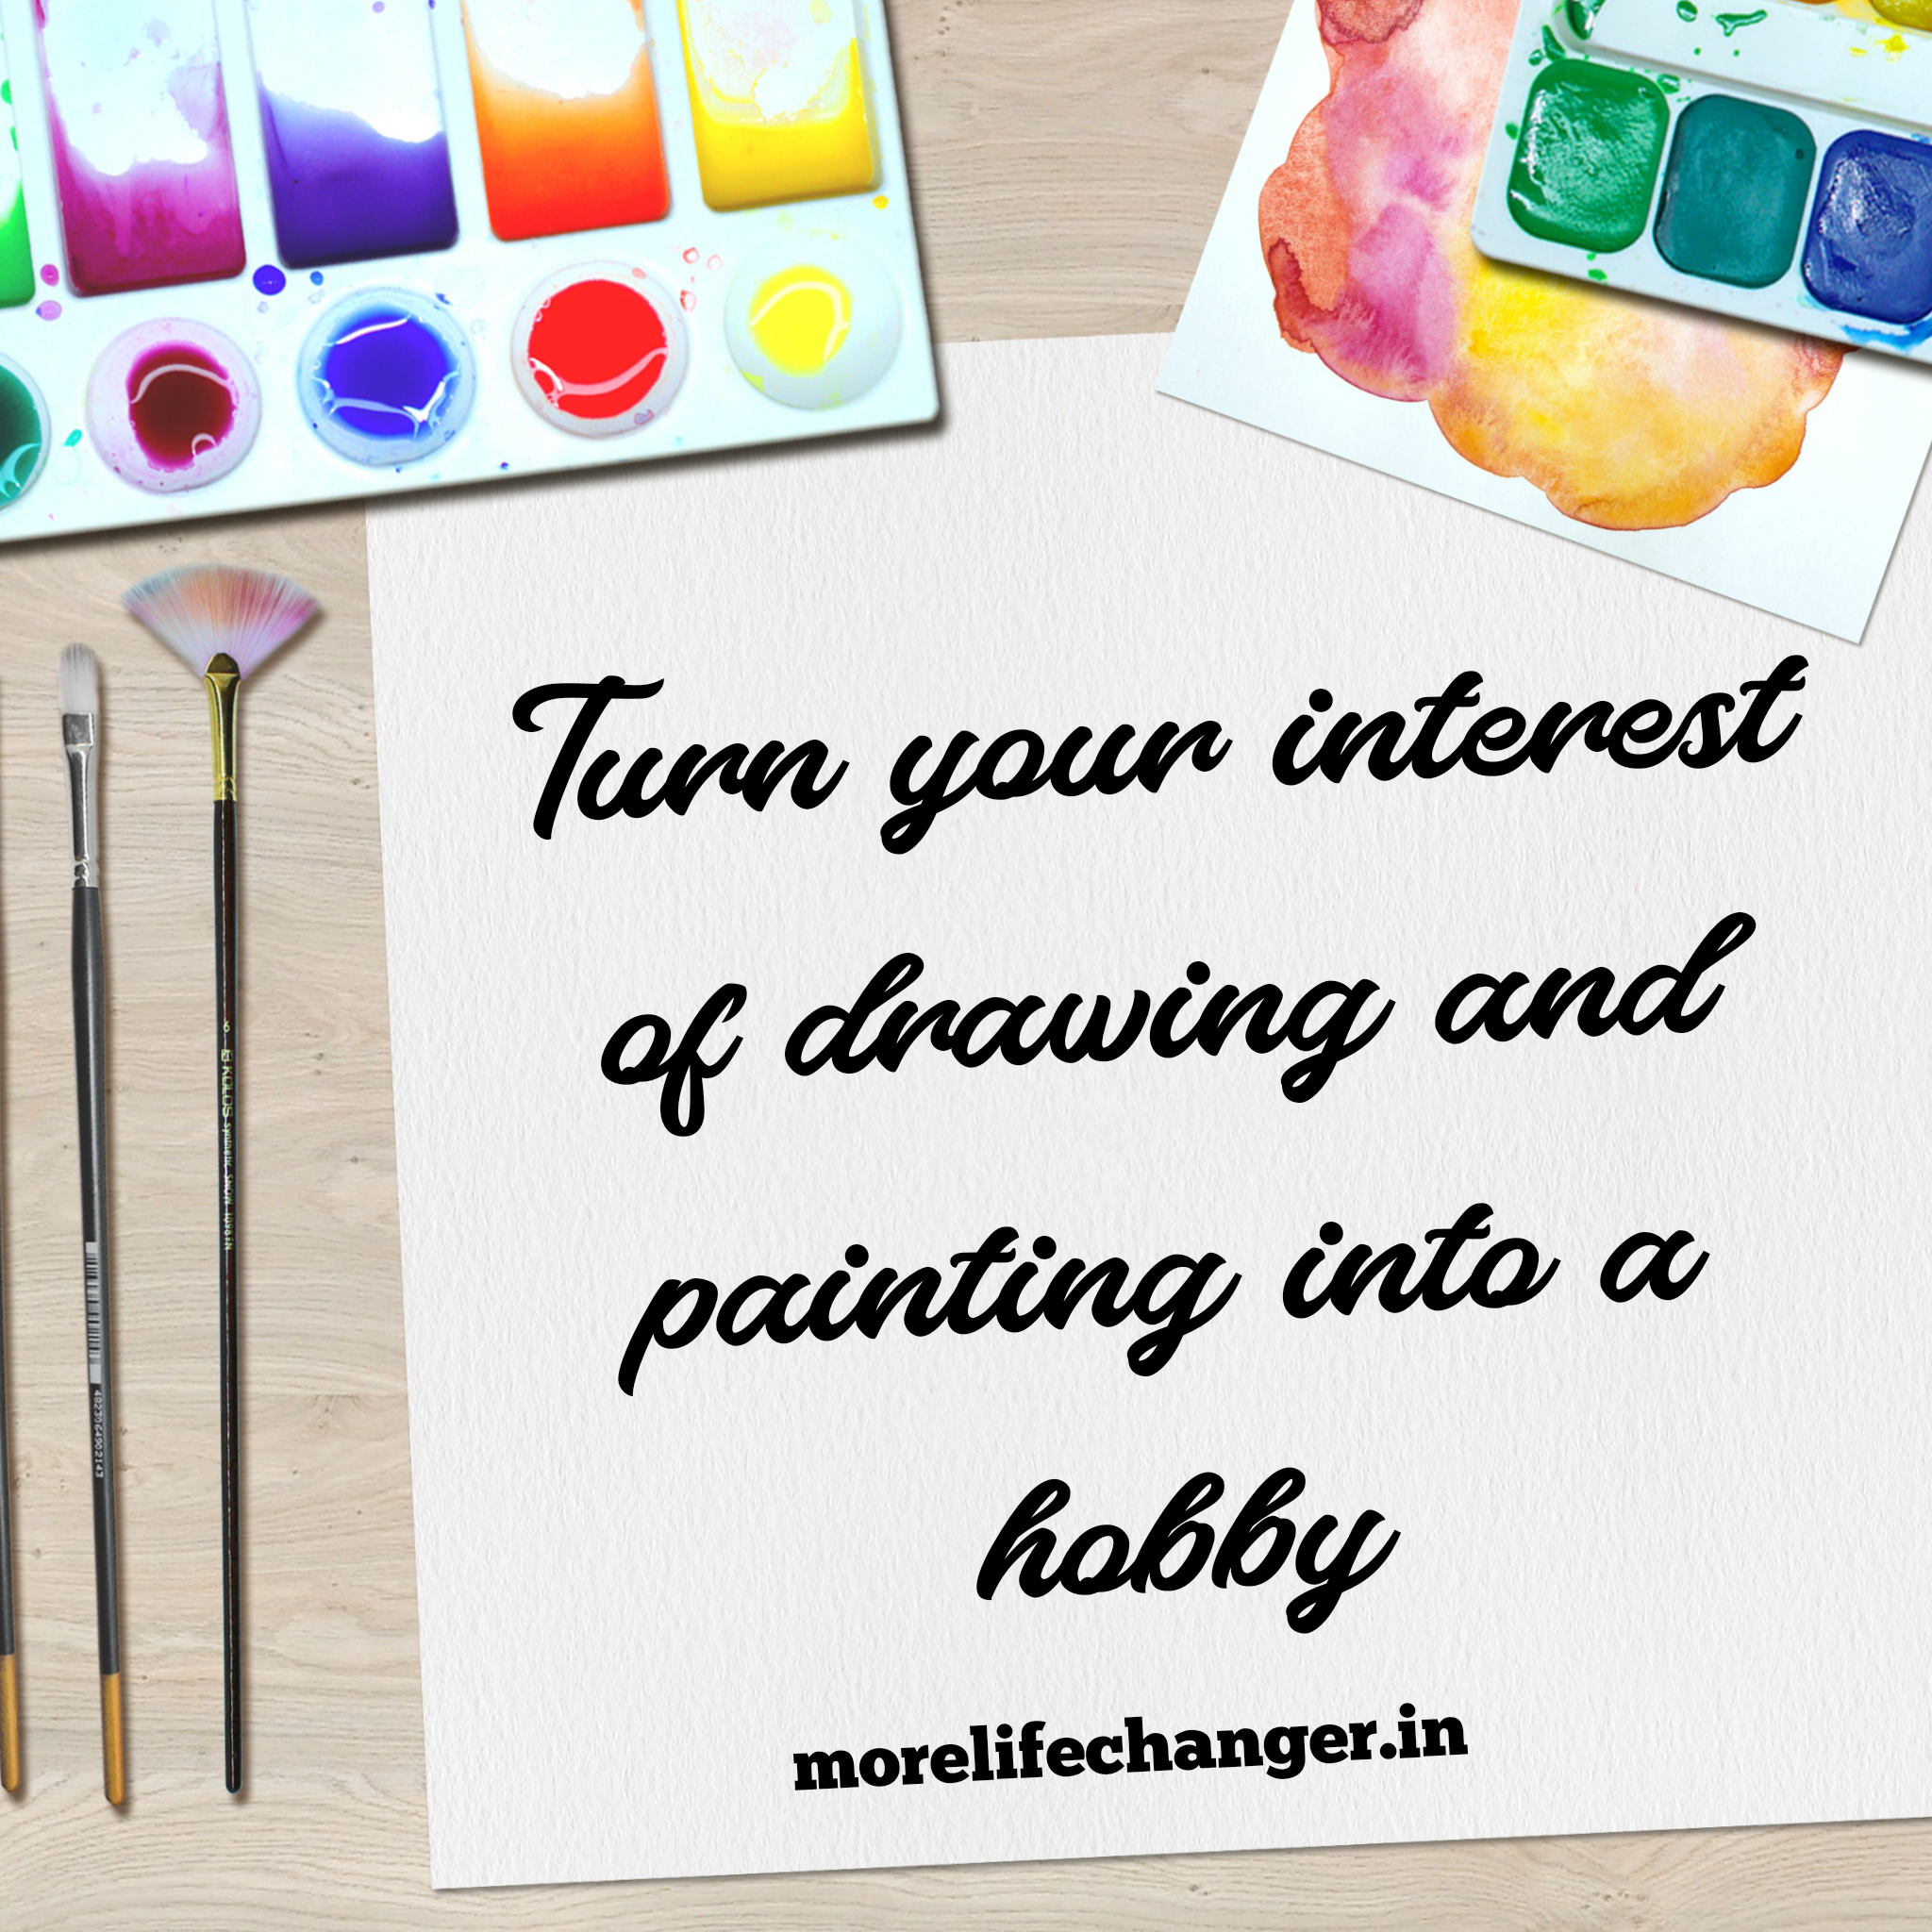 Turn your interest of drawing and painting into a hobby